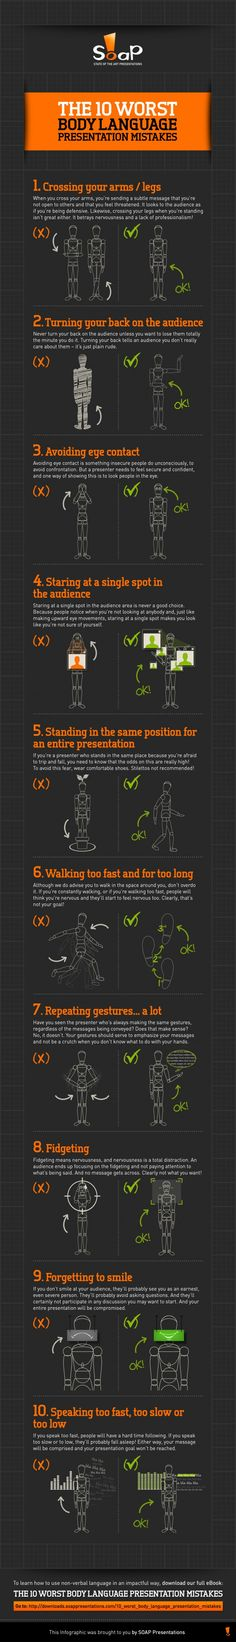 Interviews: The 8 Worst Body Language Mistakes — INFOGRAPHIC